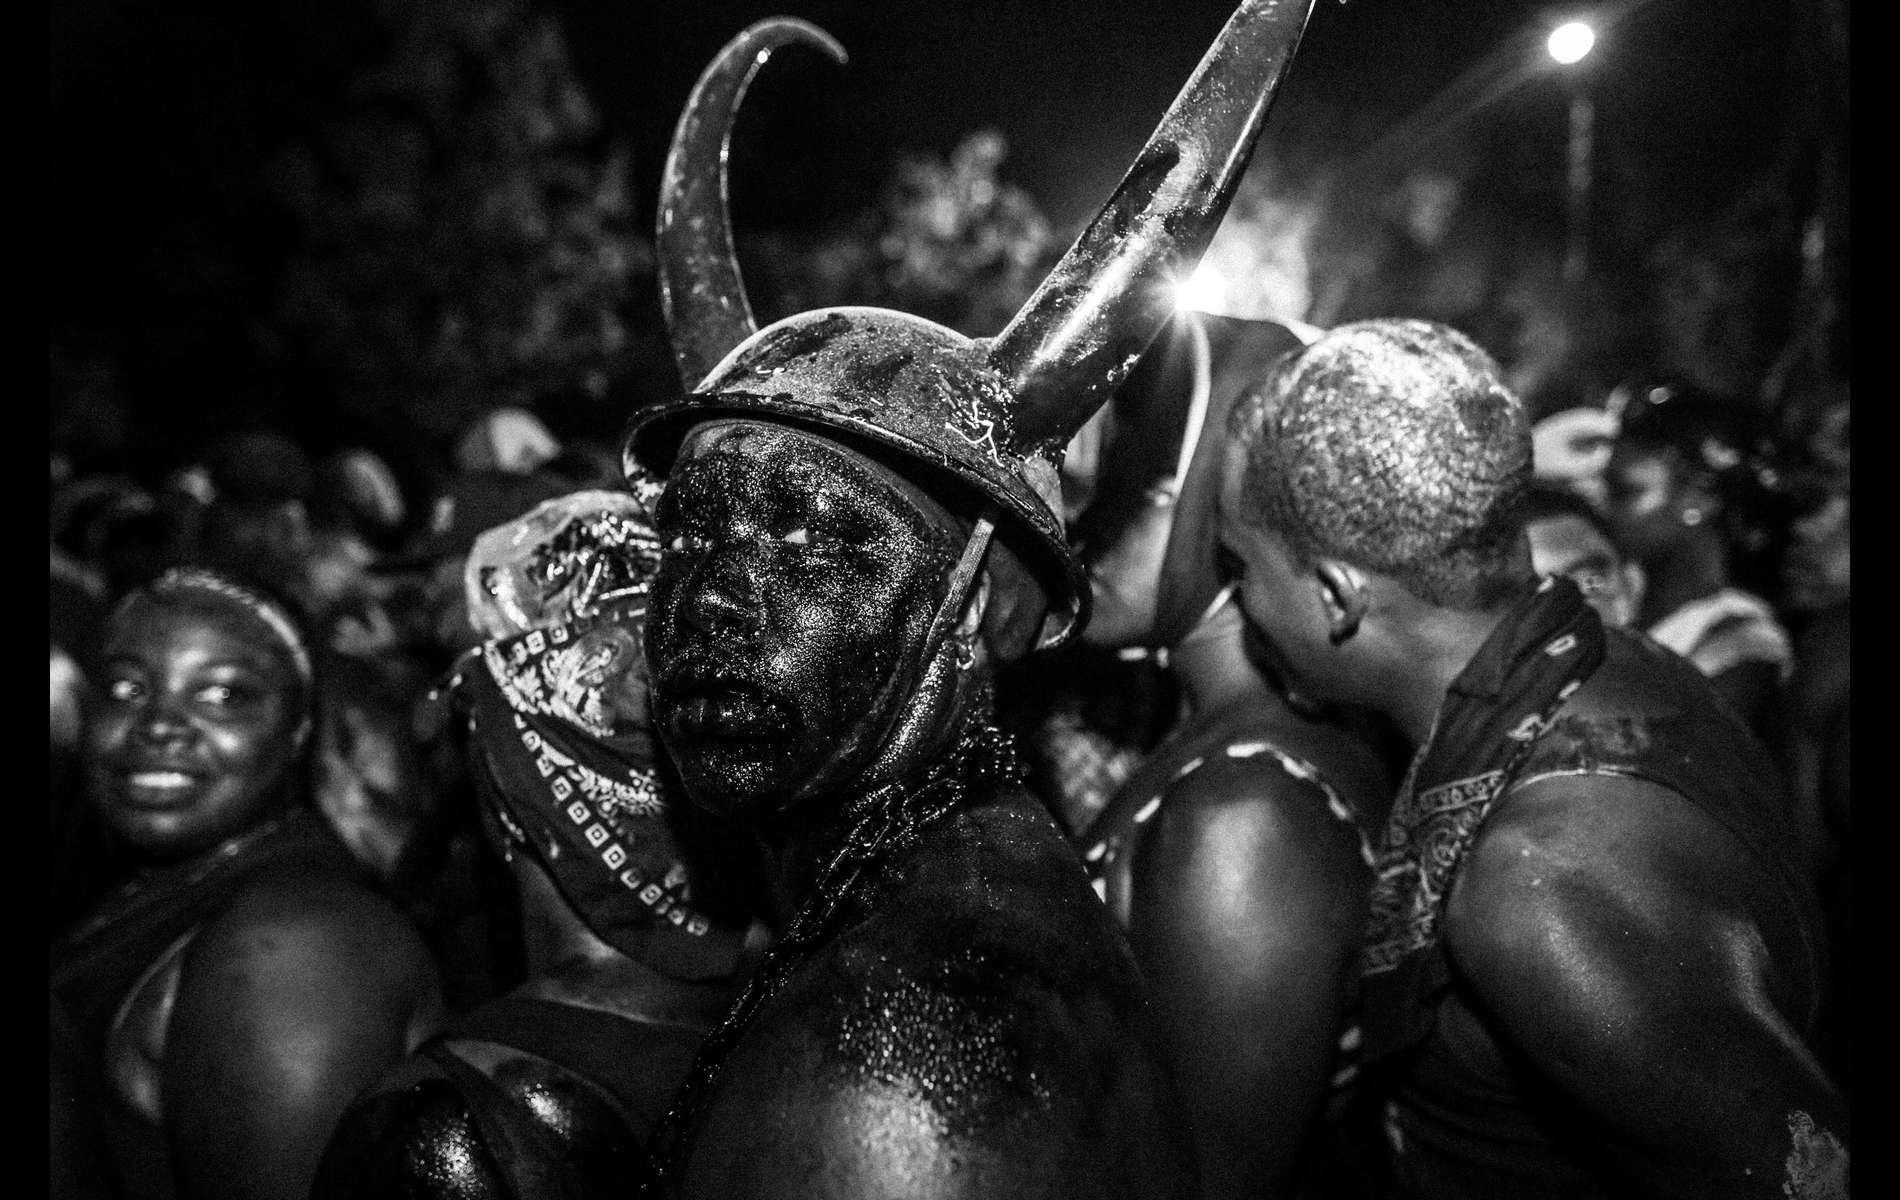 during J'ouvert festivities leading up to the West Indian American Day parade in Brooklyn, NY Sept. 2, 2013.The celebration involves calypso/soca bands and their followers dancing through the streets. The festival starts well before dawn and peaks a few hours after sunrise. J'ouvert is a contraction of the French jour ouvert, or dawn/day break.(Kevin Hagen for The Wall Street Journal)